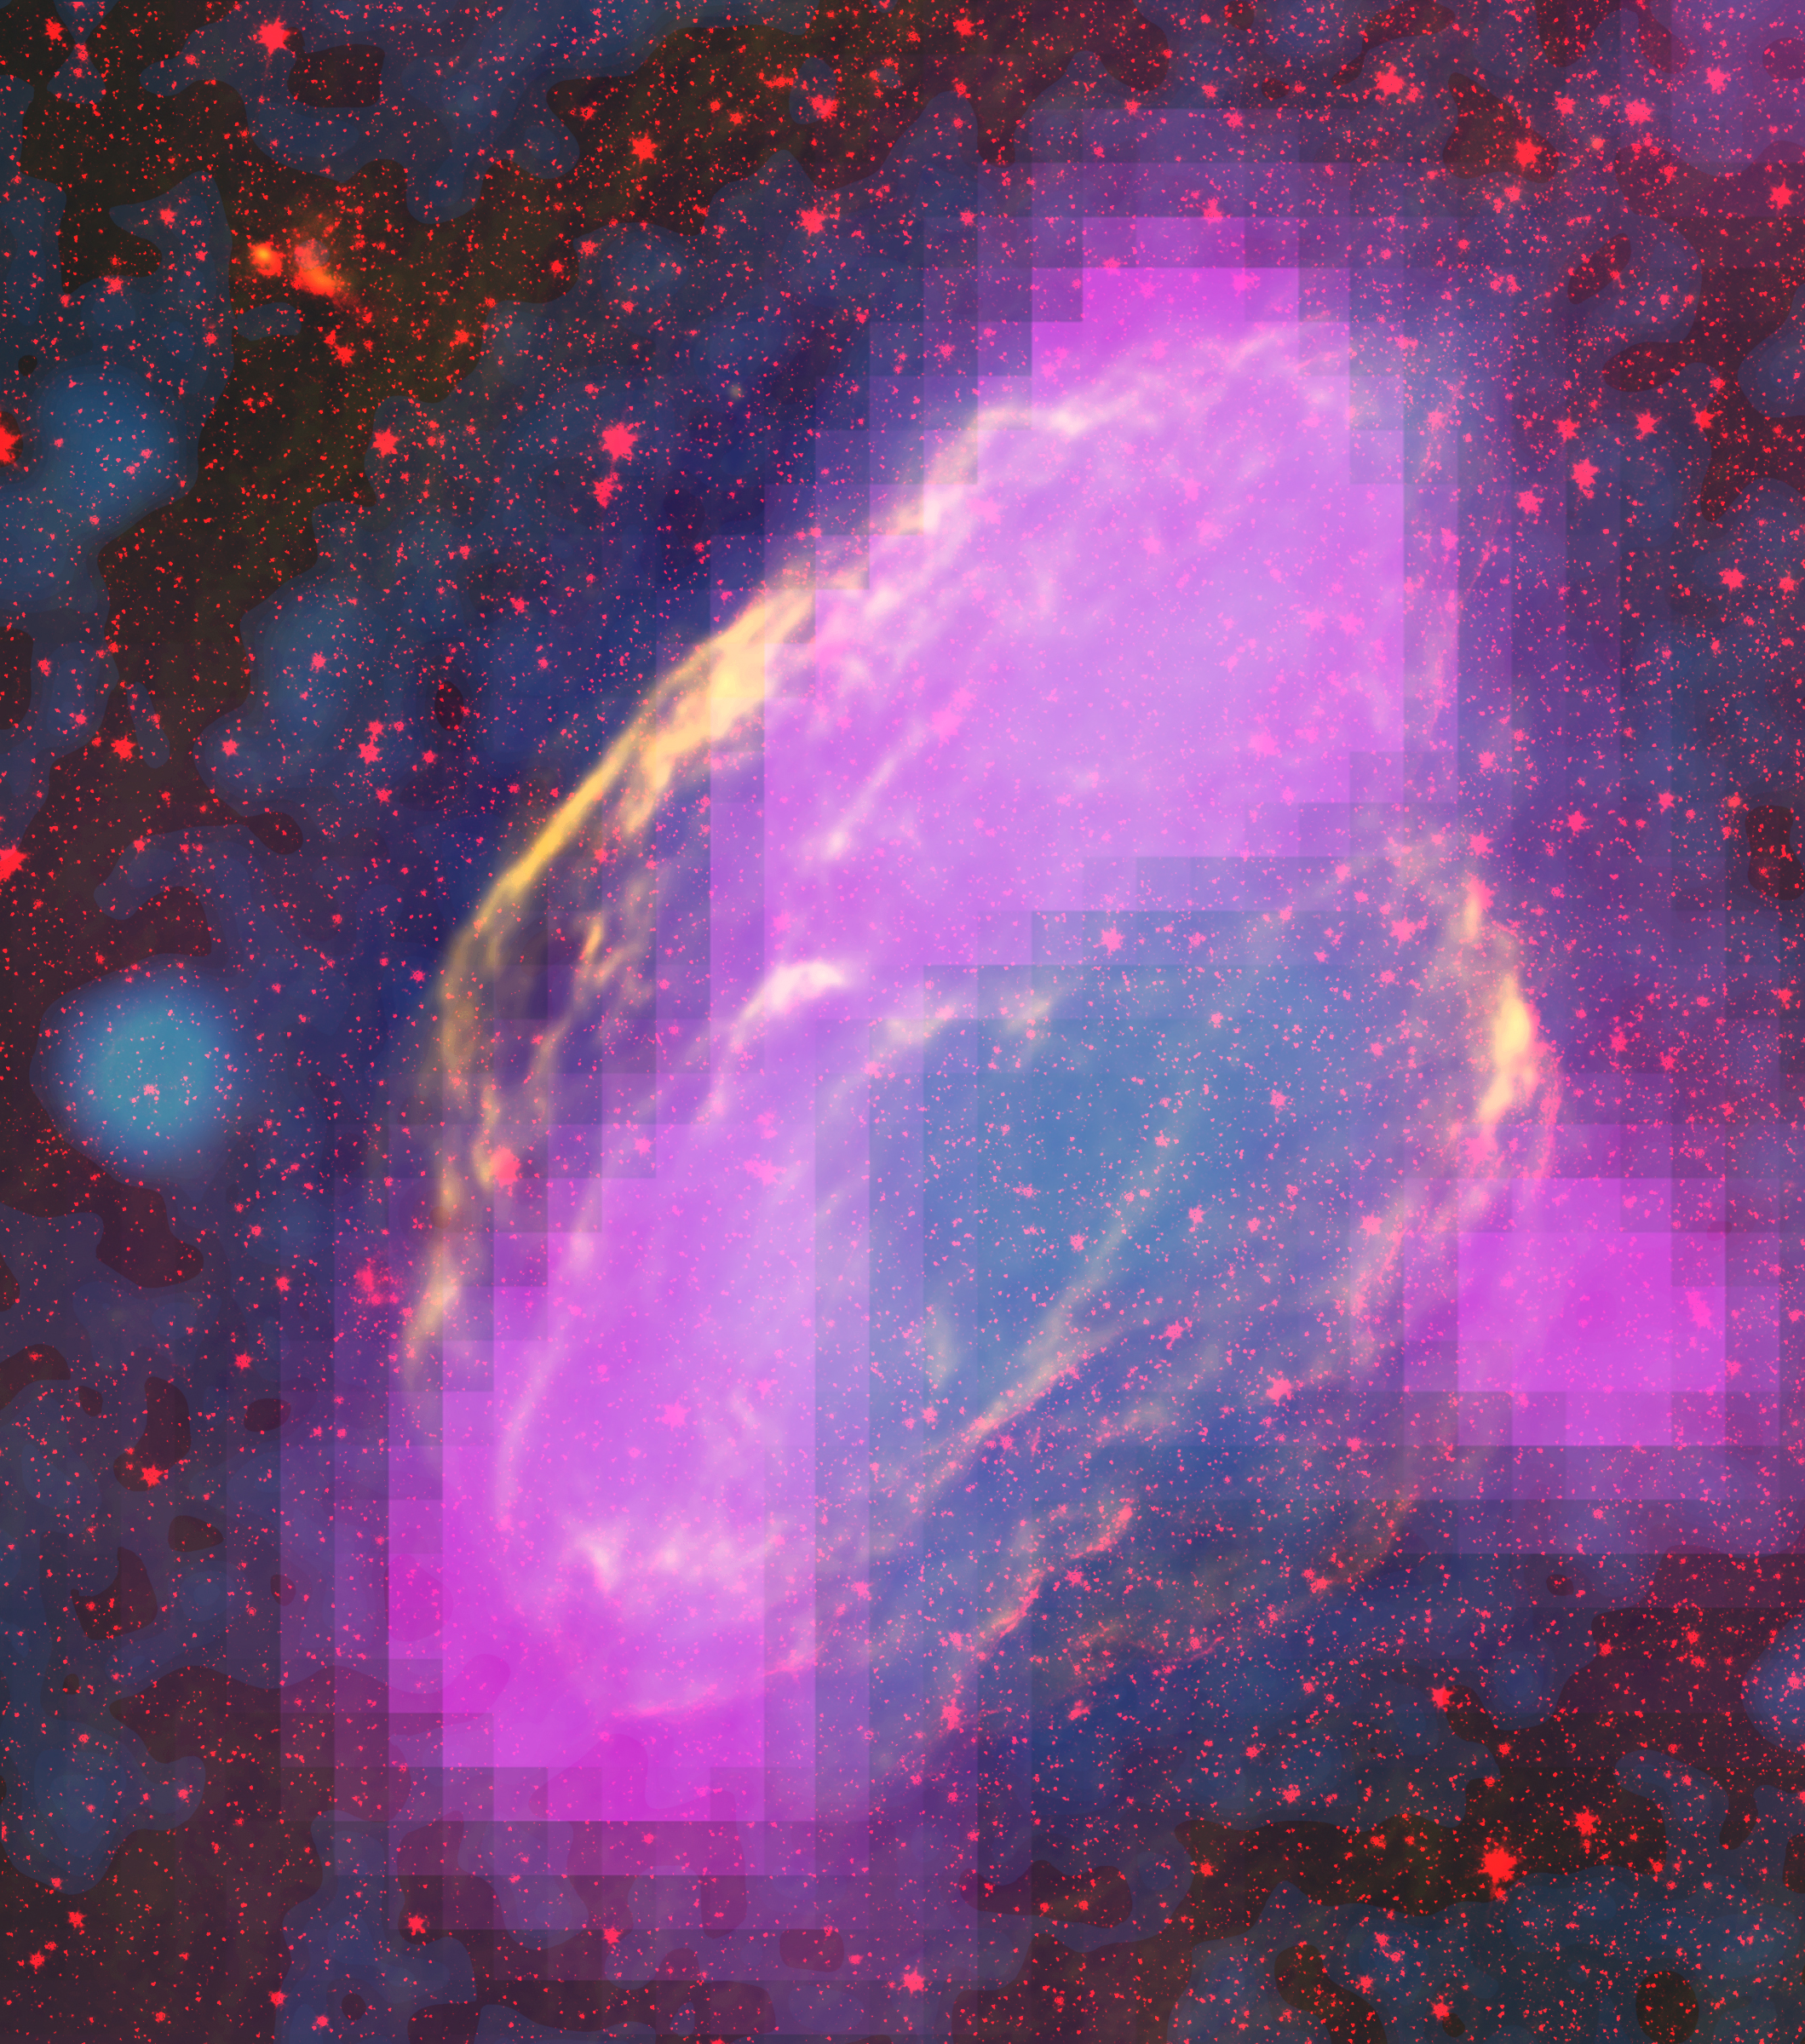 NASA - Fermi's Latest Gamma-ray Census Highlights Cosmic ...